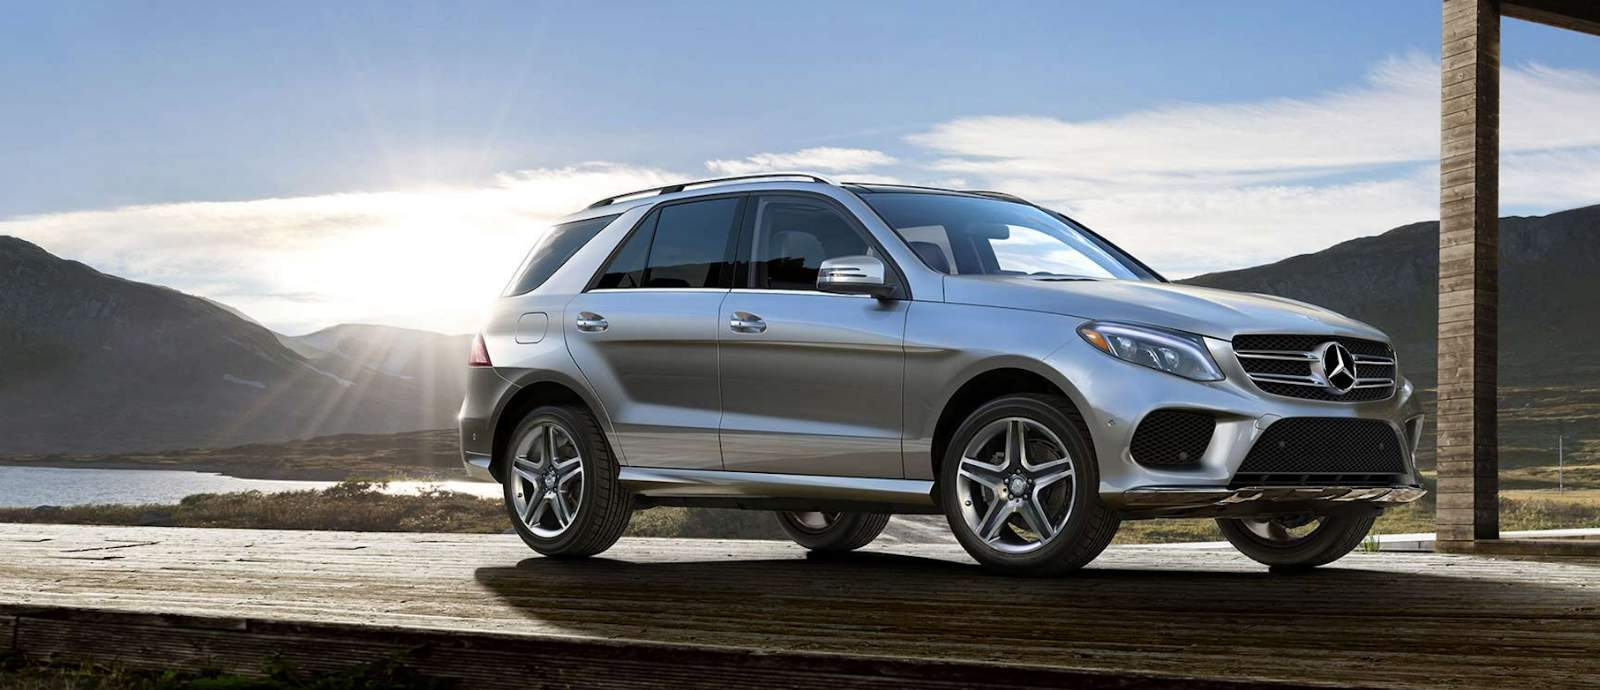 The 2018 GLE 350